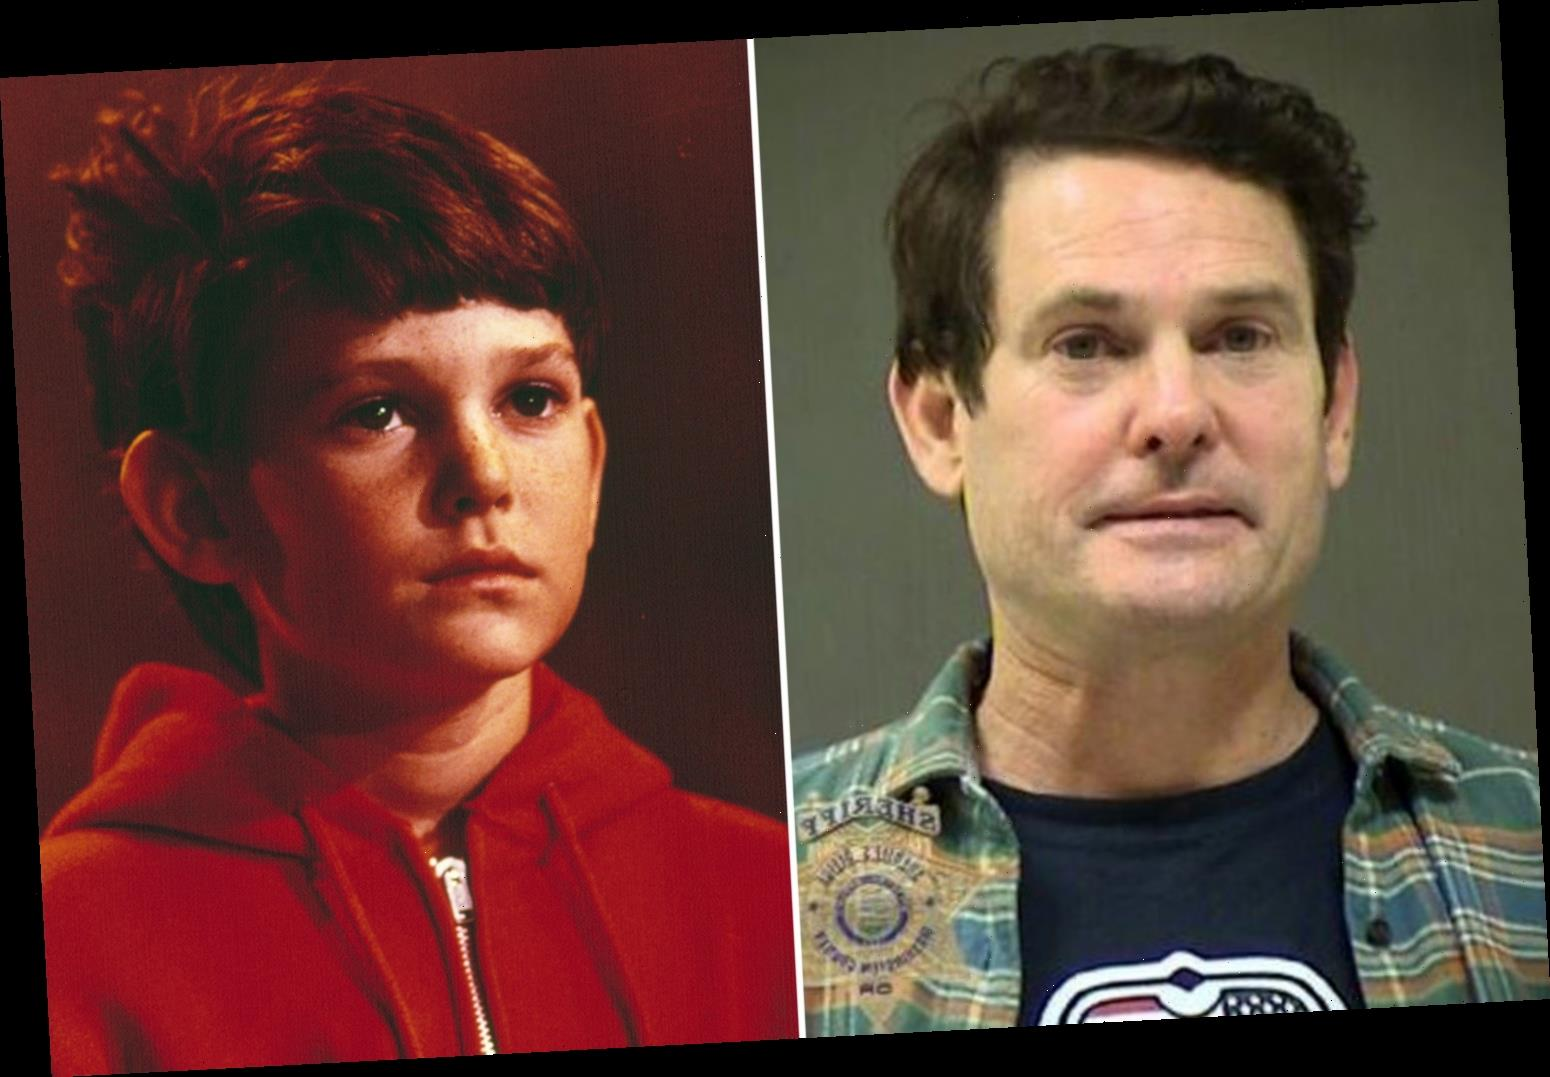 Former E.T. the Extra-Terrestrial Child Star Henry Thomas Arrested on Suspicion of DUI in Oregon